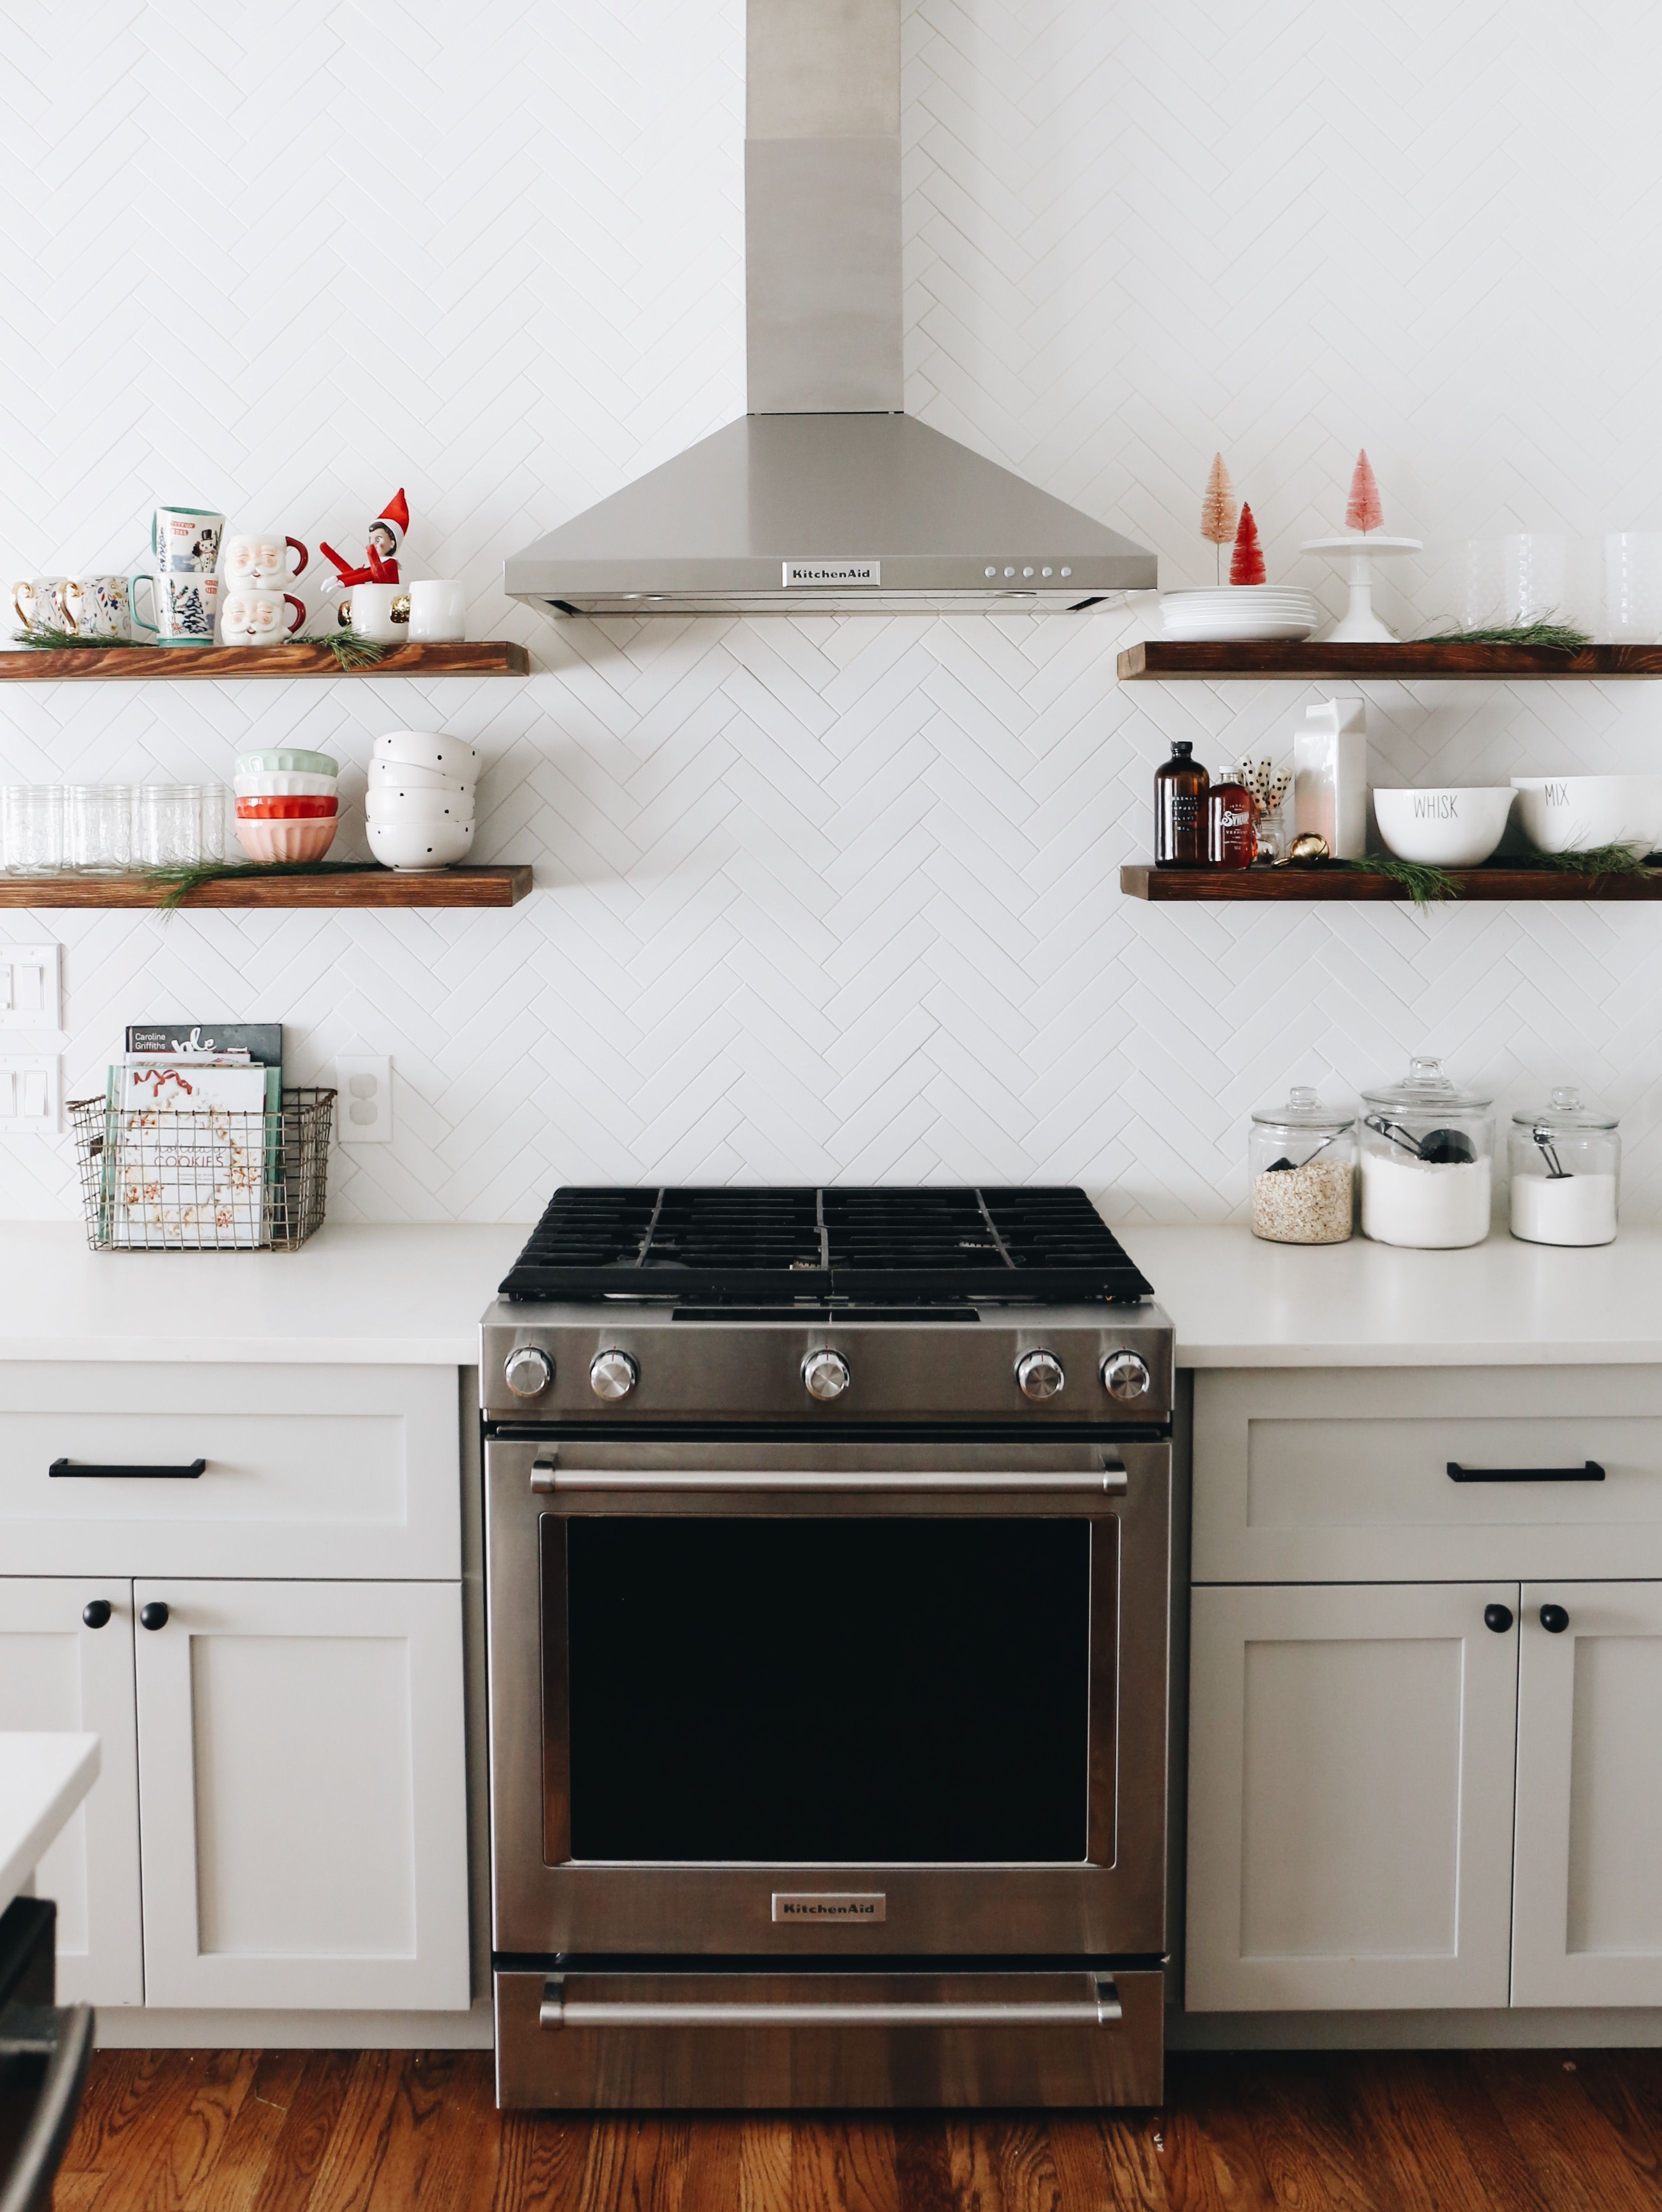 Holiday Home Tour | Kitchens, Kitchen makeovers and Decorating kitchen